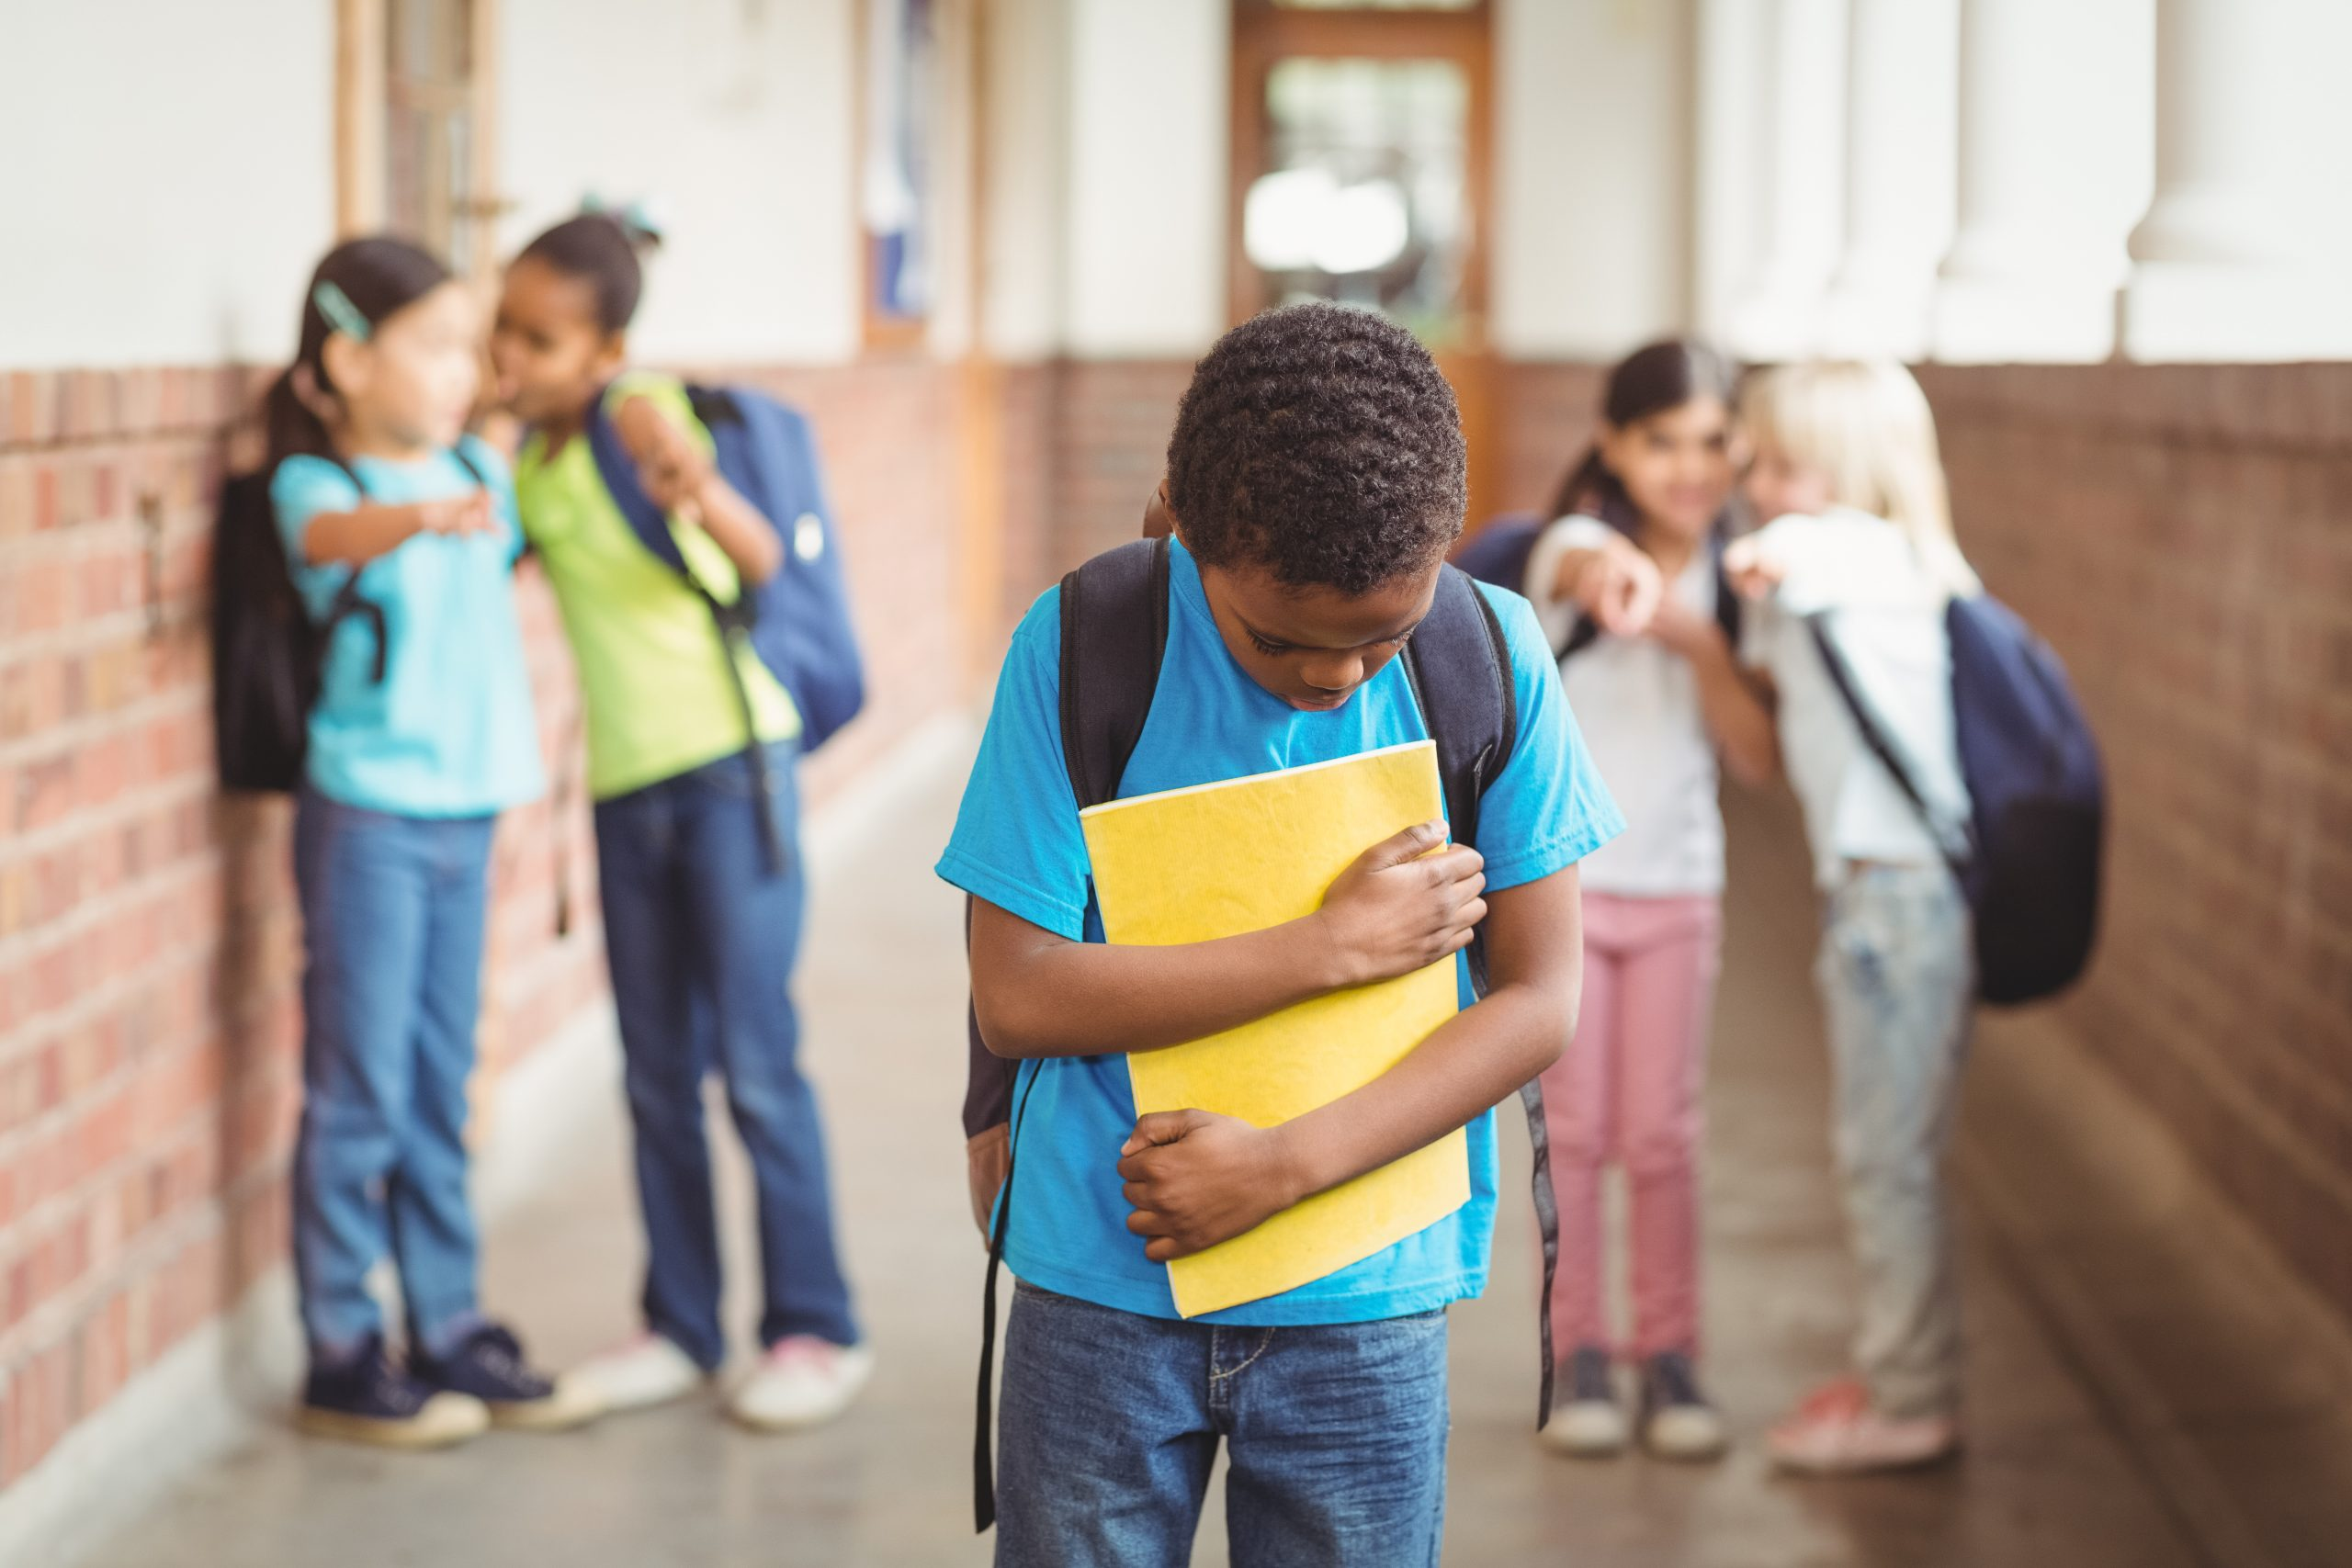 Bullying: Where Does it Come From?